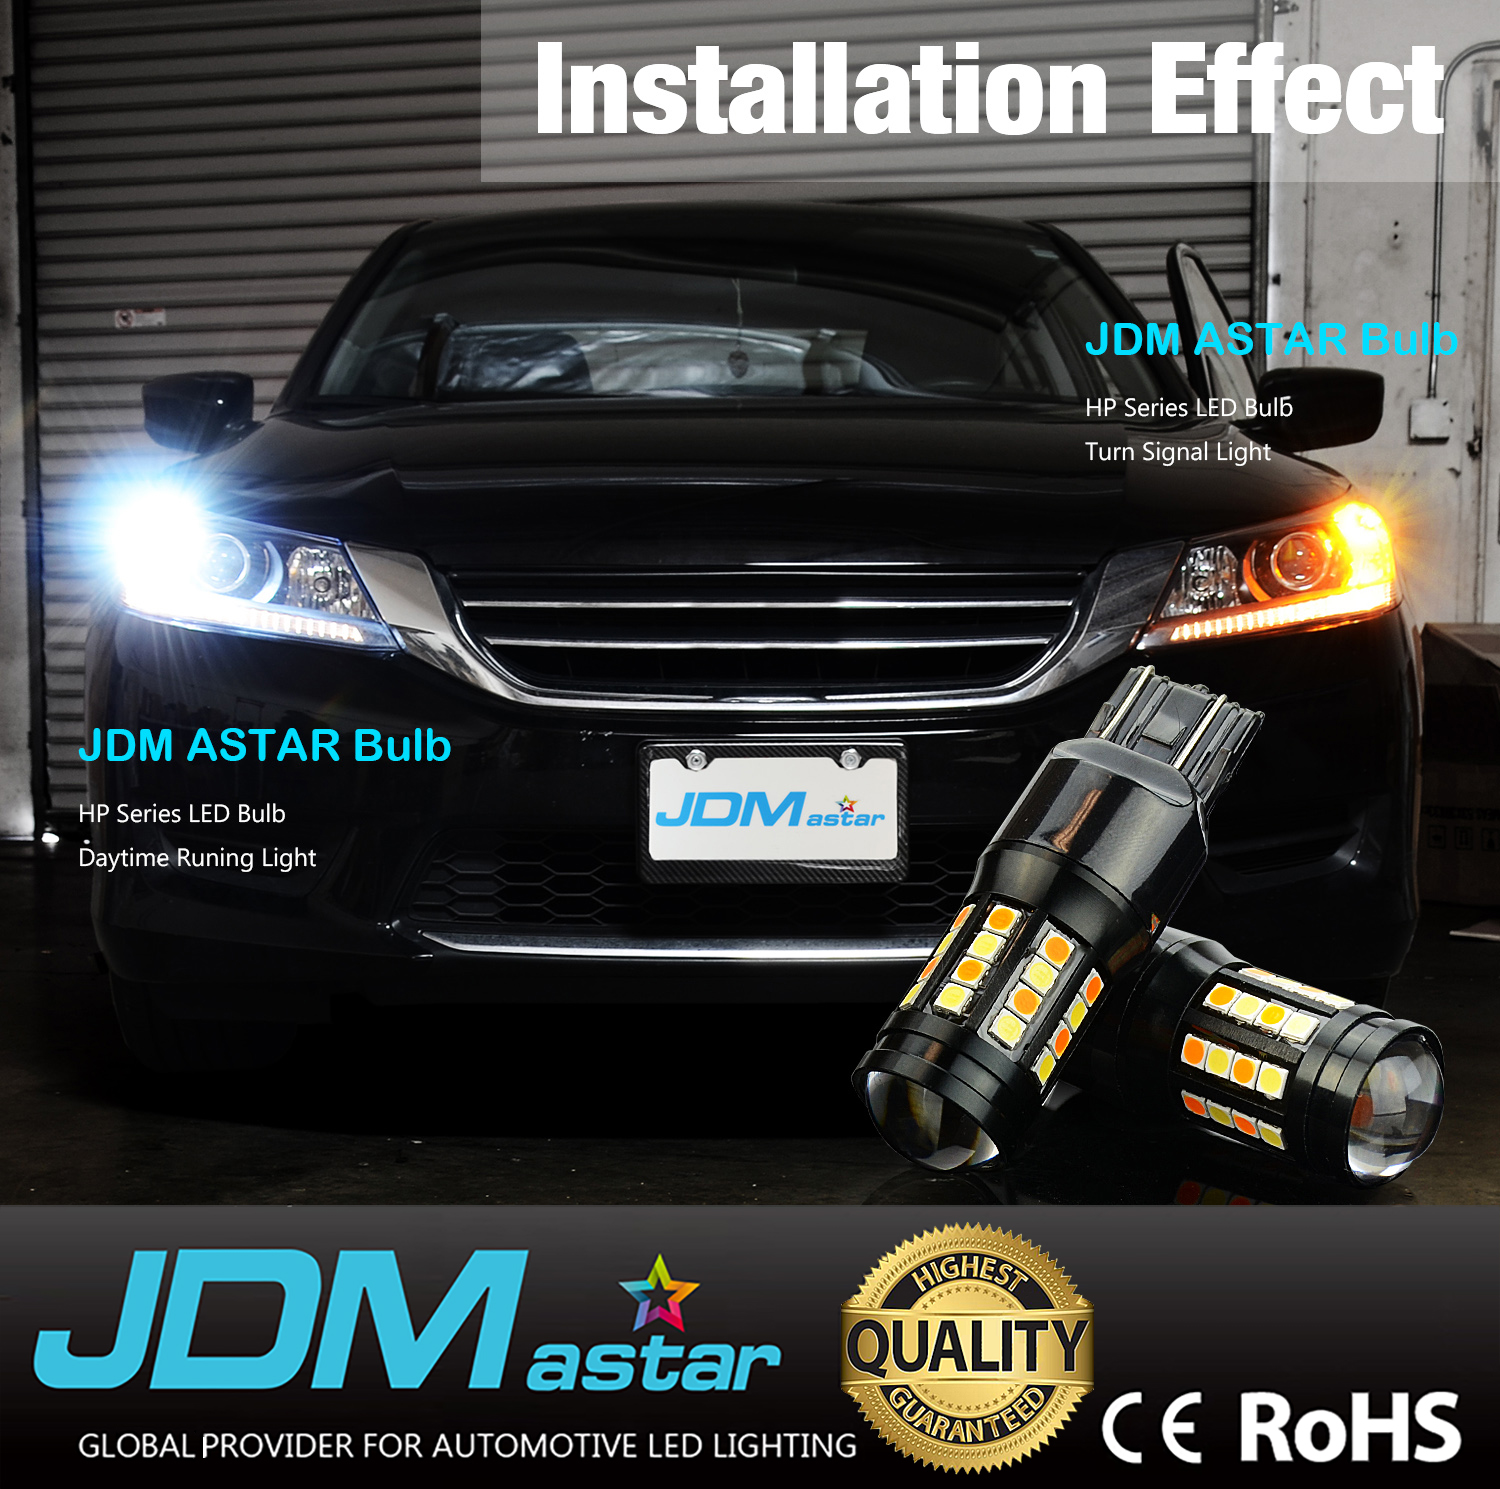 Cars for Sale by Smd Awesome Jdm astar 2x 1200lm 7443 7440 Dual Color 40 Smd White Amber